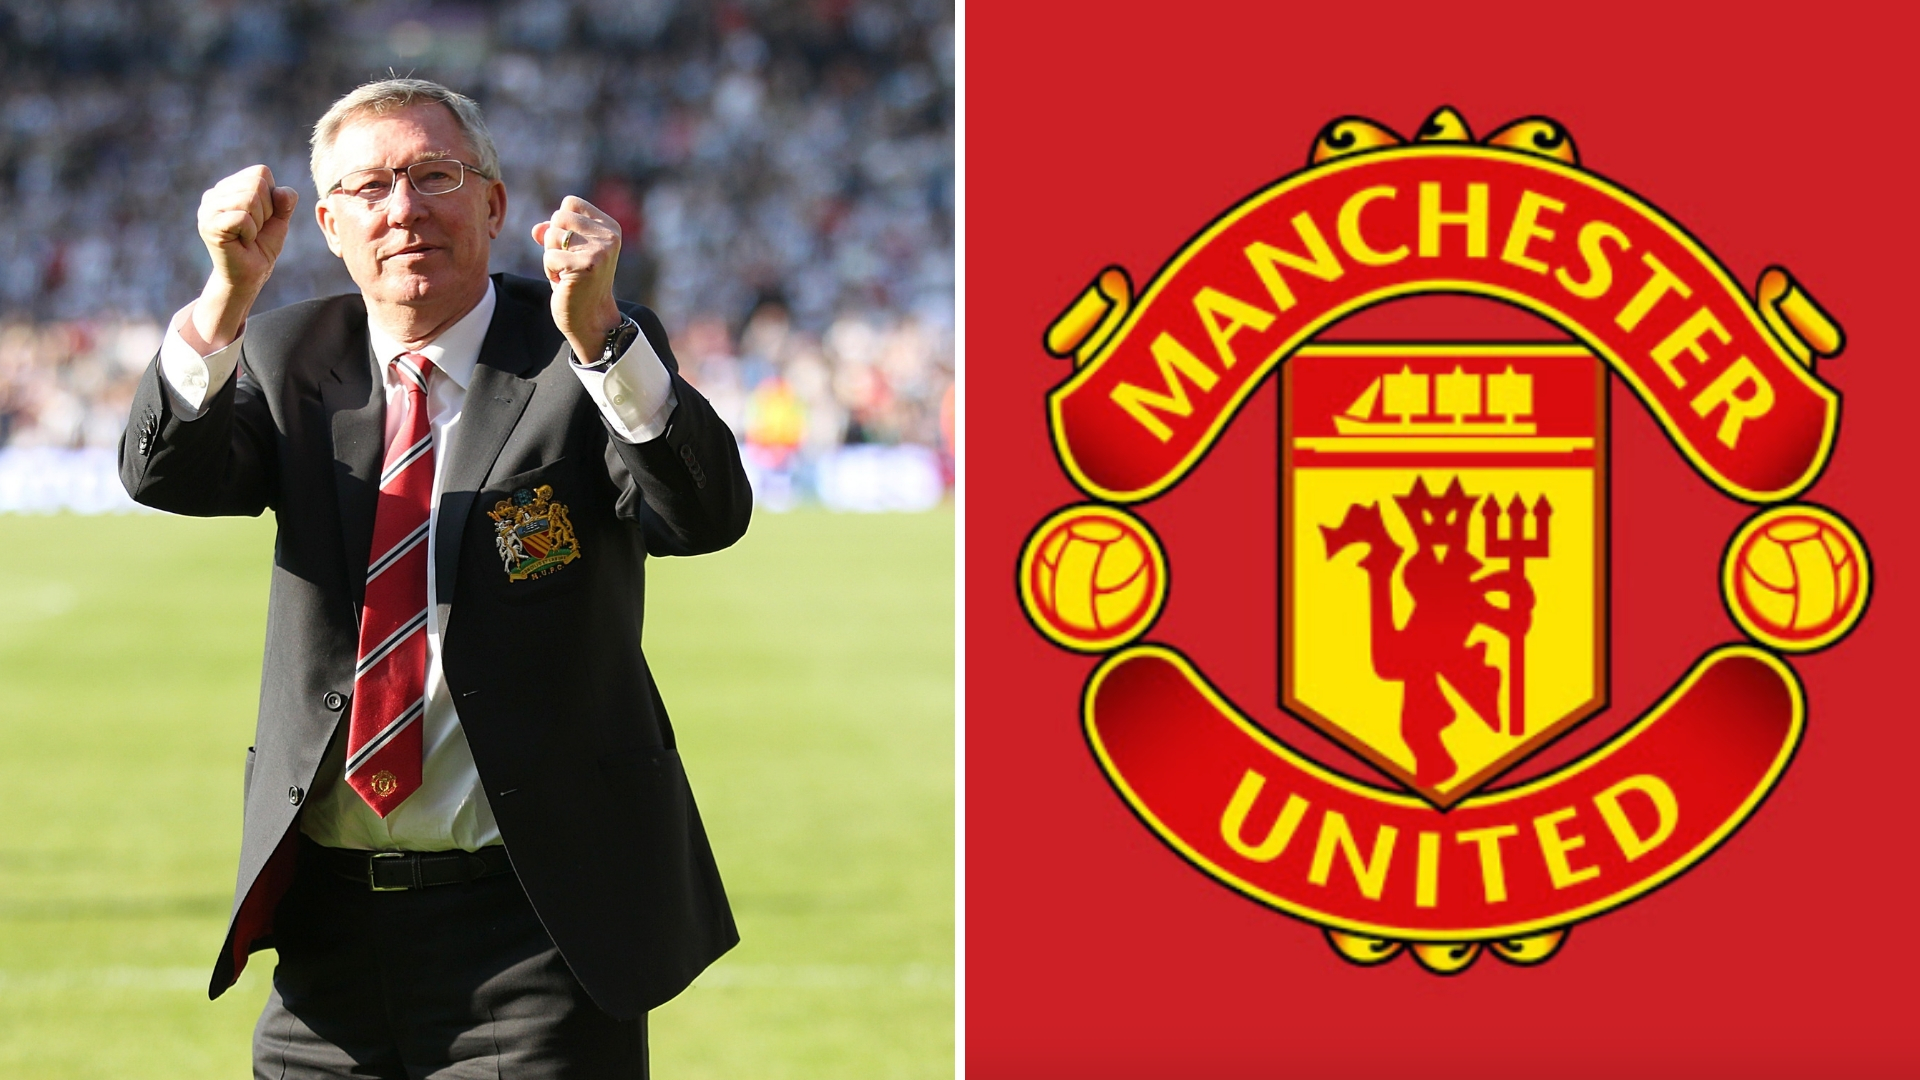 Former Manchester United Star Reveals Brutal Encounter With Sir Alex Ferguson